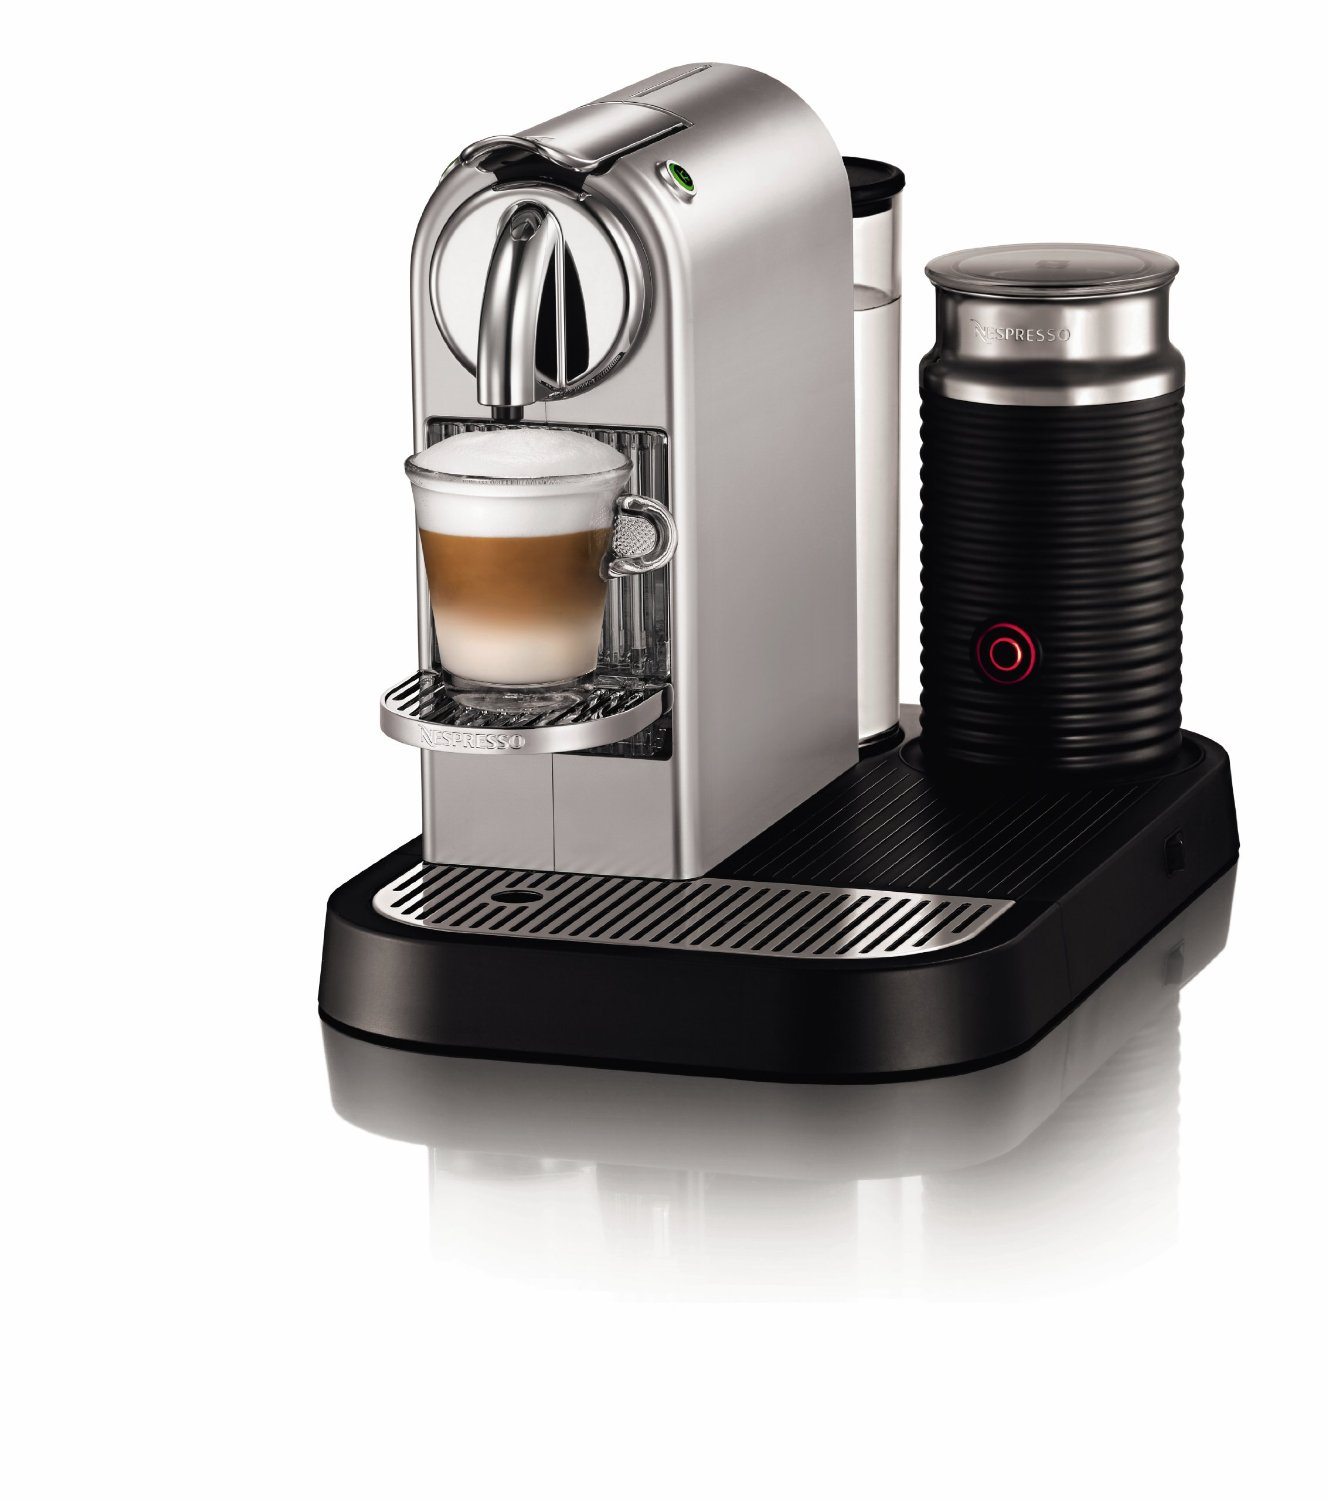 modern espresso machine with milk frother with stylish design for home made coffee